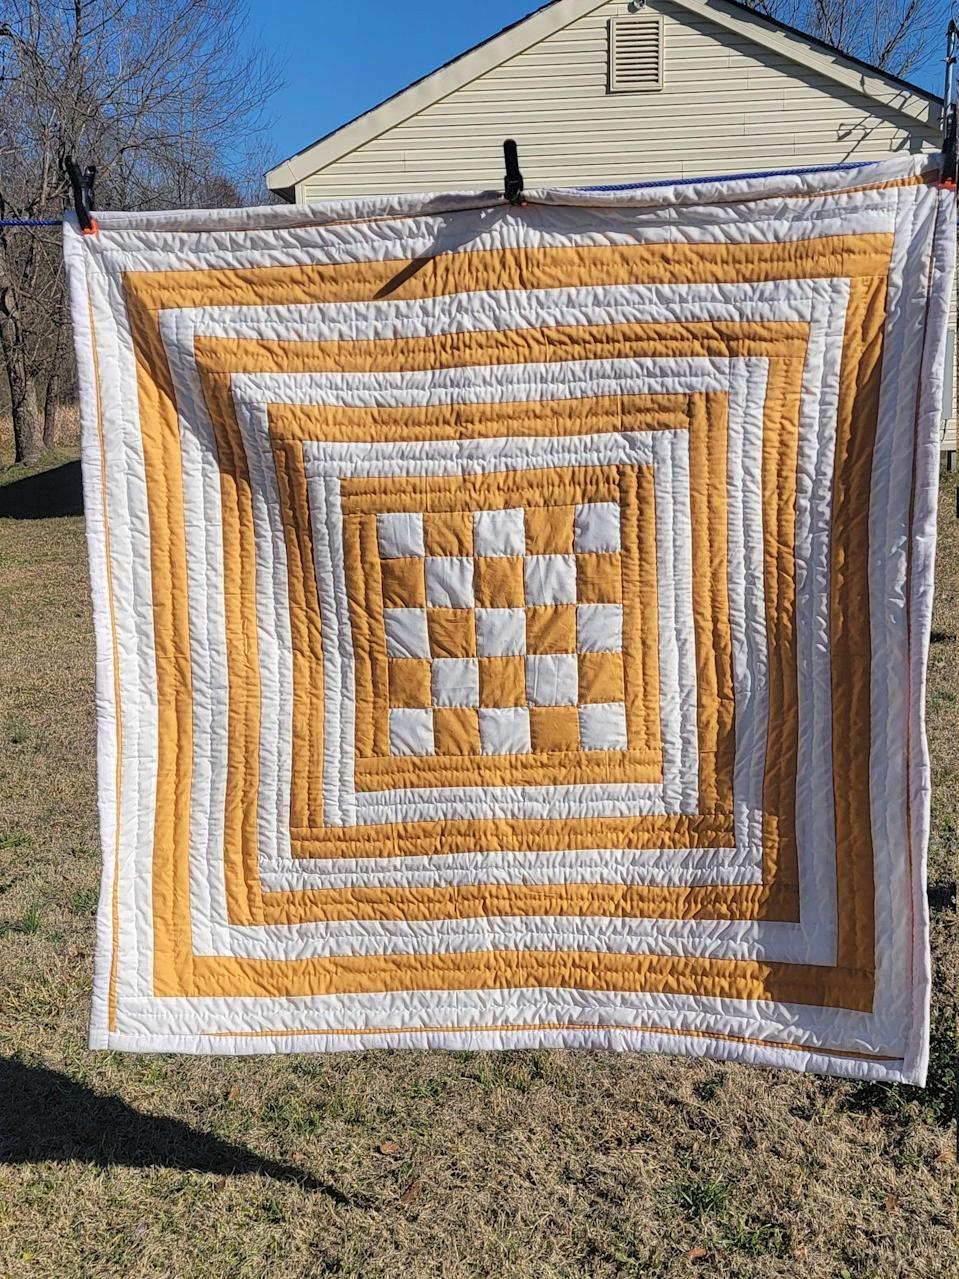 """<h2>Quilts by Caster Handmade Quilt<br></h2><br>She taught you how to sew — or at least tried to — and collects needlepoint canvases that she finds at antique shops and estate sales. As a lover of all things handmade and a textile connoisseur, she'd definitely cherish a handmade quilt from a member of the legendary collective of Gee's Bend, Alabama. While some of the handmade creations are pricey, each one is a living work of art — something she understands better than anyone.<br><br><em>Shop <strong><a href=""""https://www.etsy.com/shop/QuiltsByCaster"""" rel=""""nofollow noopener"""" target=""""_blank"""" data-ylk=""""slk:Quilts by Caster"""" class=""""link rapid-noclick-resp"""">Quilts by Caster</a></strong> on Etsy</em><br><br><strong>Quilts by Caster</strong> Gold and White Housetop Quilt, $, available at <a href=""""https://go.skimresources.com/?id=30283X879131&url=https%3A%2F%2Fwww.etsy.com%2Flisting%2F967533501%2Fhandsewn-quilt-cotton-wallhanger"""" rel=""""nofollow noopener"""" target=""""_blank"""" data-ylk=""""slk:Etsy"""" class=""""link rapid-noclick-resp"""">Etsy</a>"""